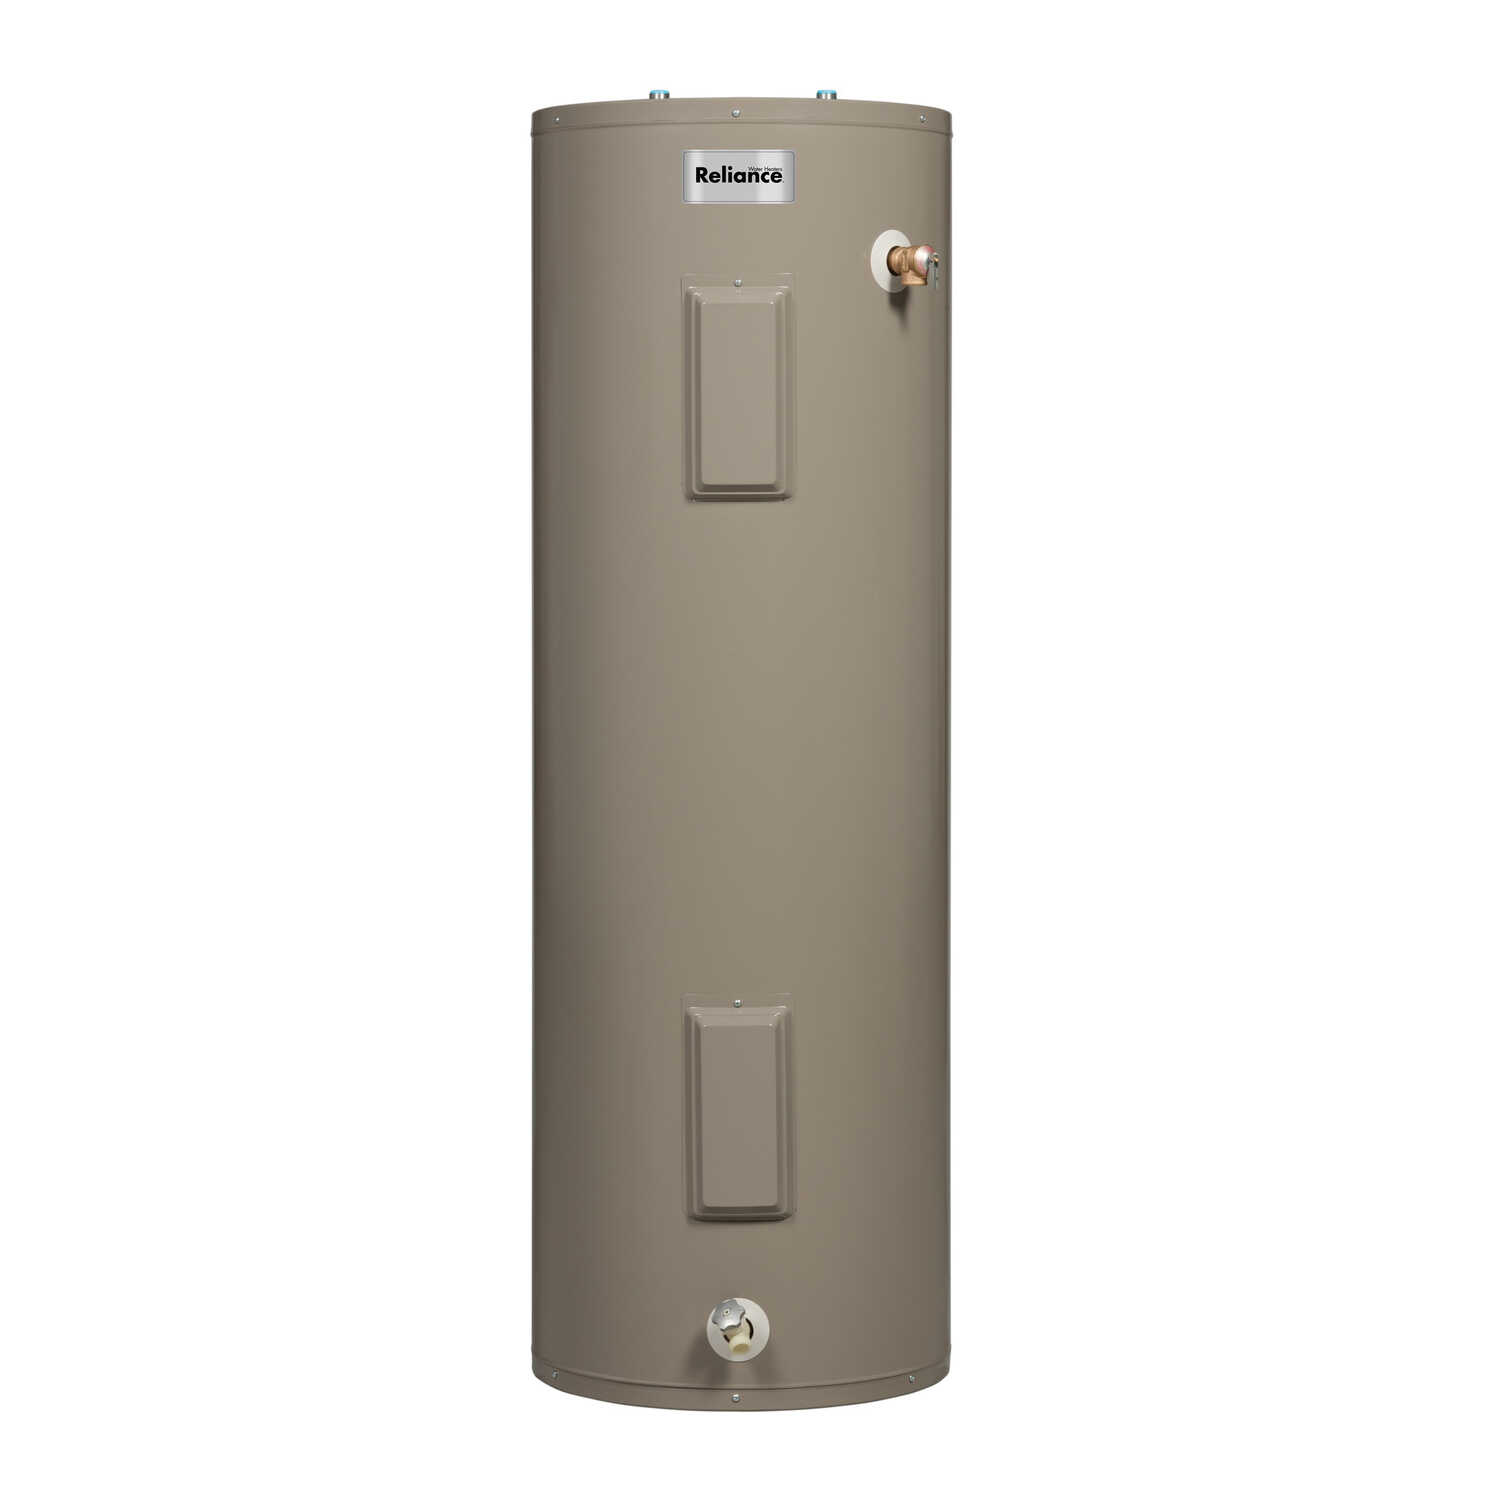 Reliance  Electric  Water Heater  46-1/2 in. H x 19 in. W x 19 in. L 30 gal.